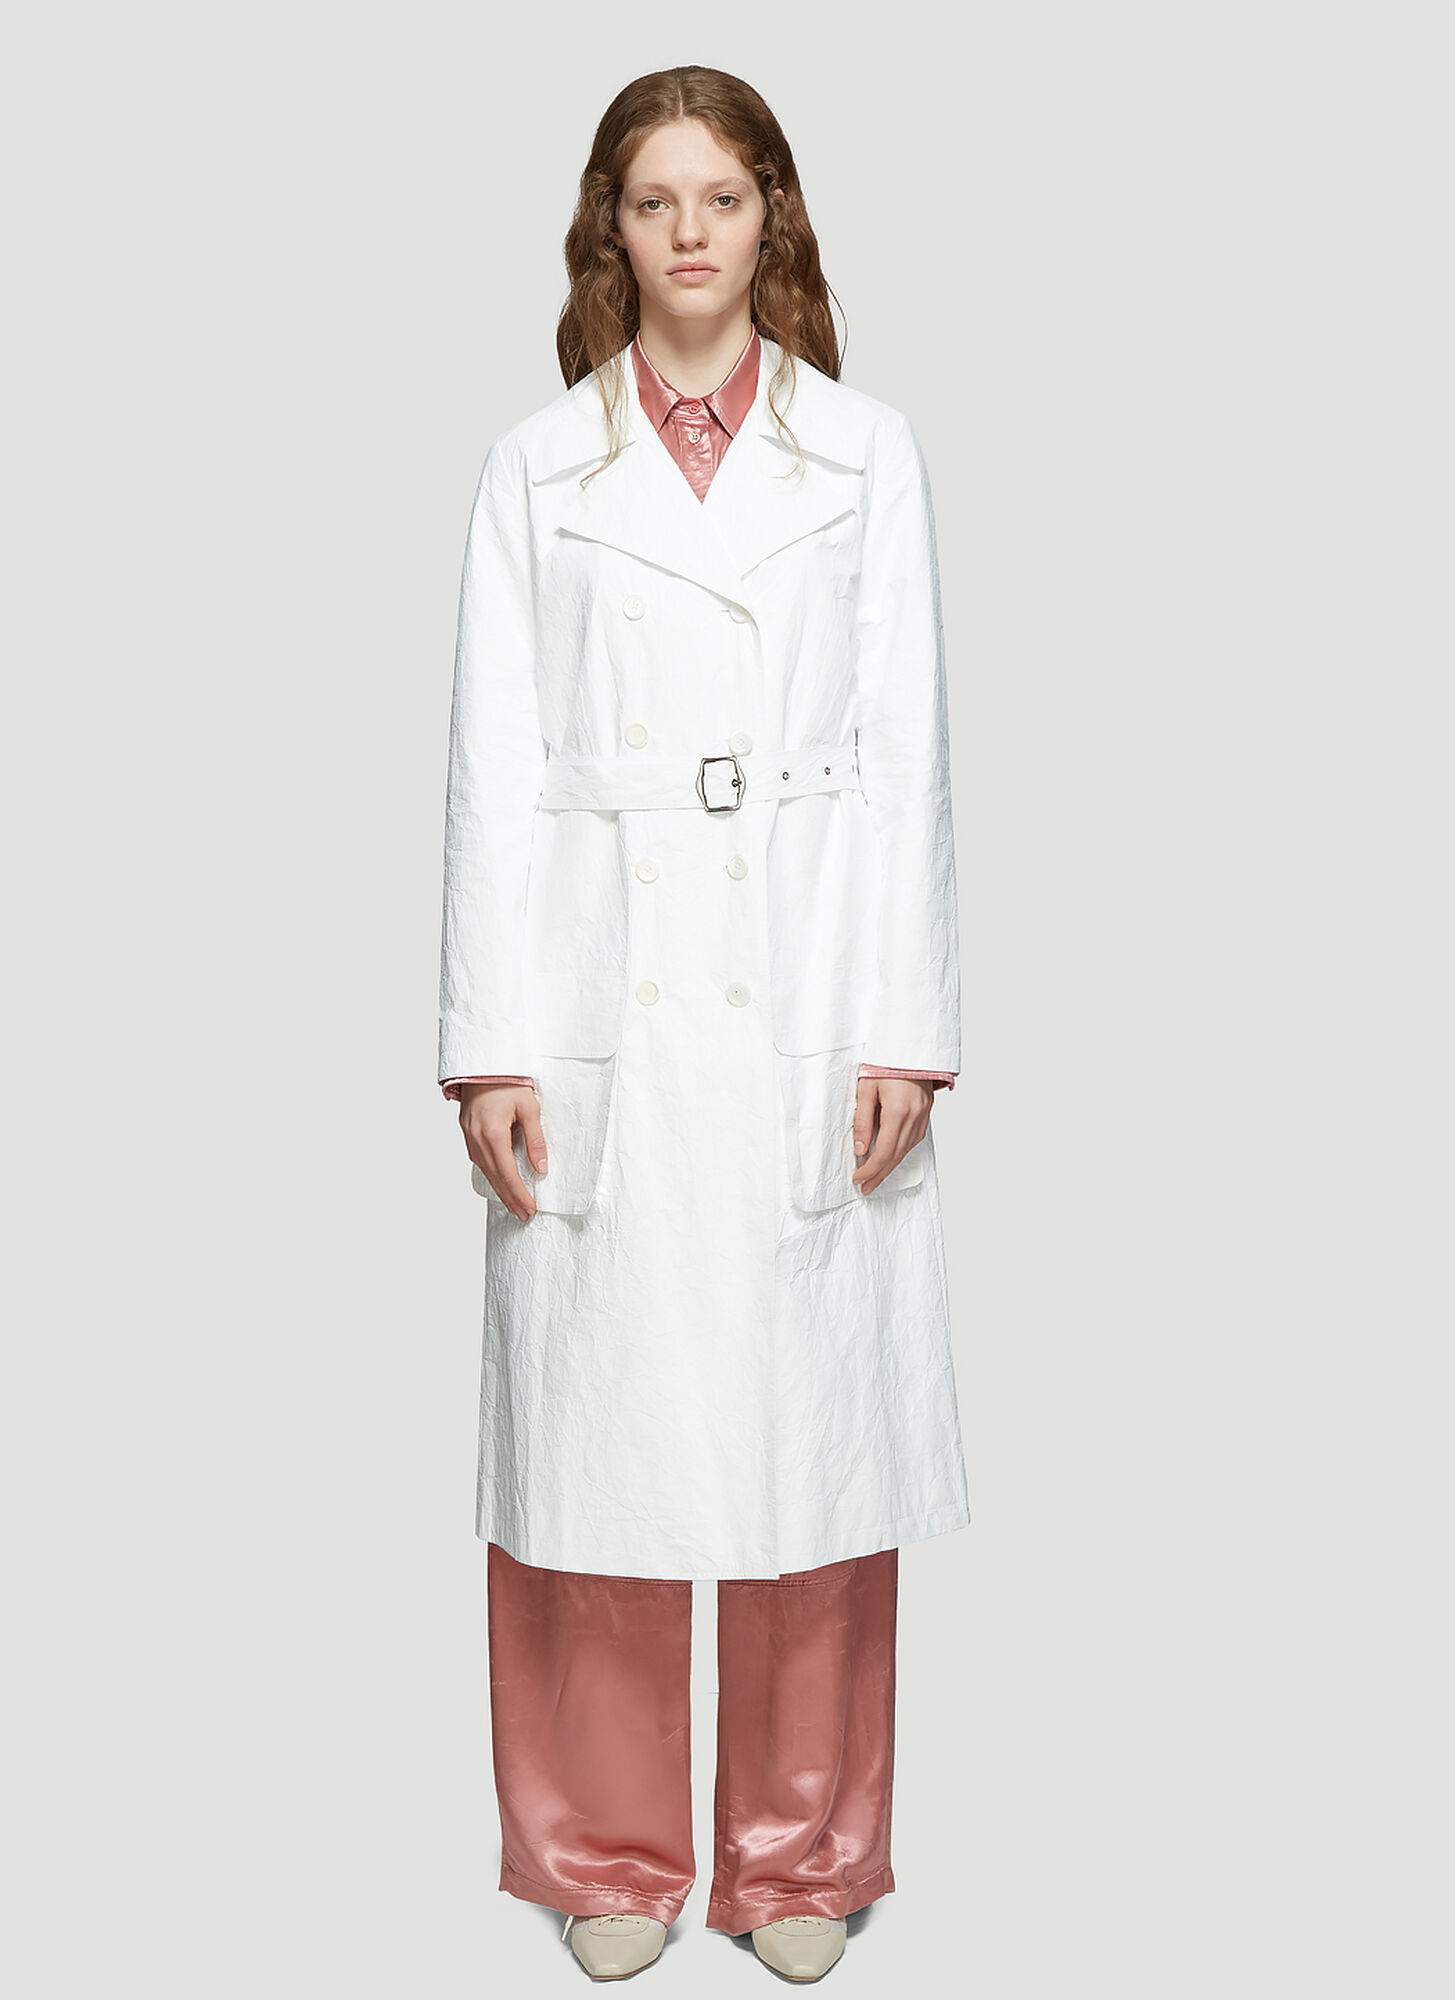 Photo of Sies Marjan Nisa Matte Coated Trench Coat in White - Sies Marjan Coats